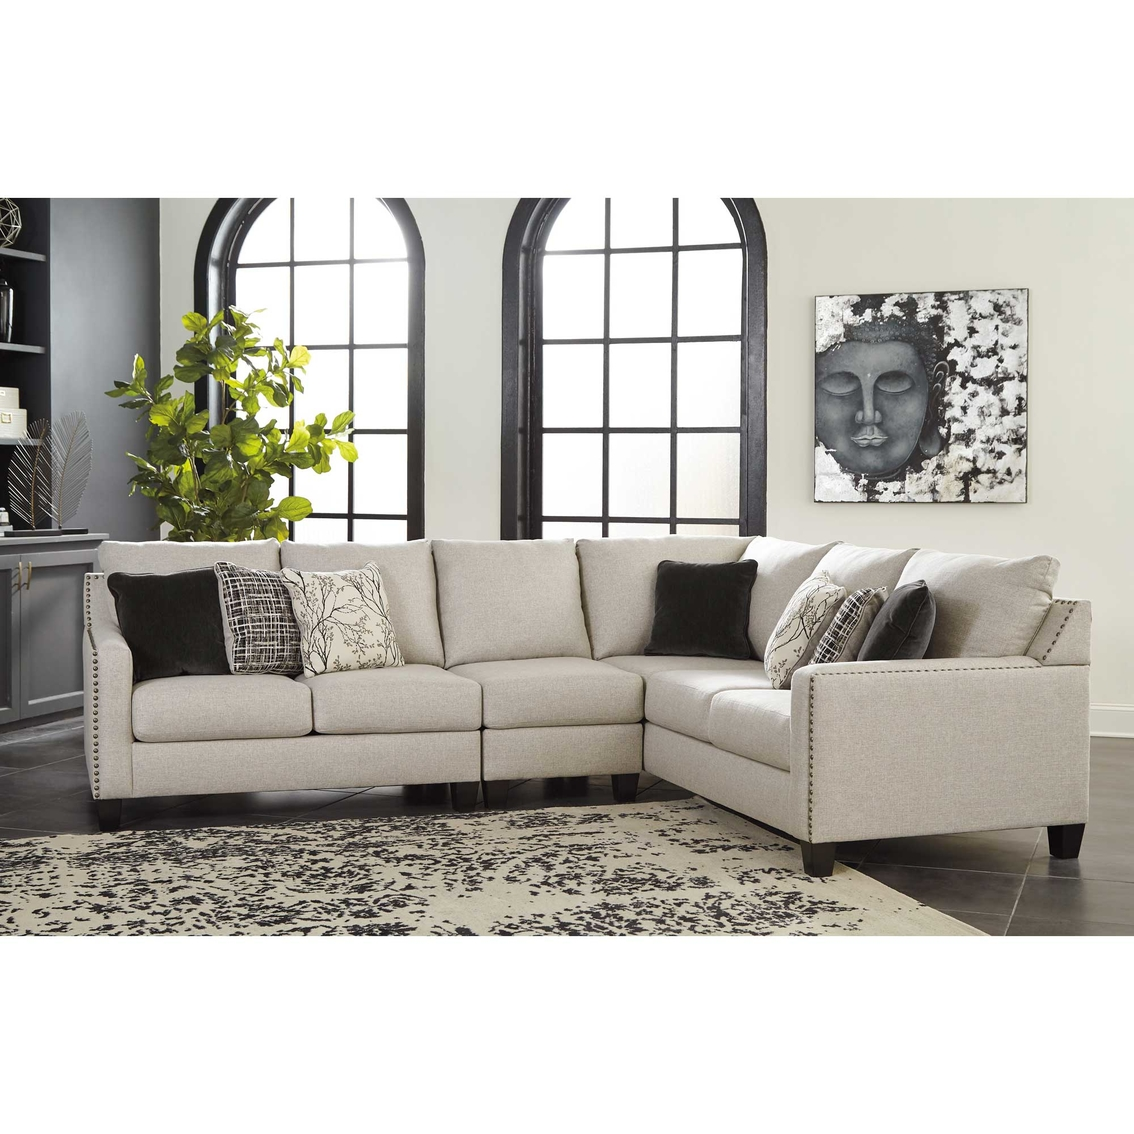 Signature Design By Ashley Hallenberg 3 Pc Sectional Raf Sofa Laf Loveseat Chair Sofas Couches Furniture Appliances Shop The Exchange